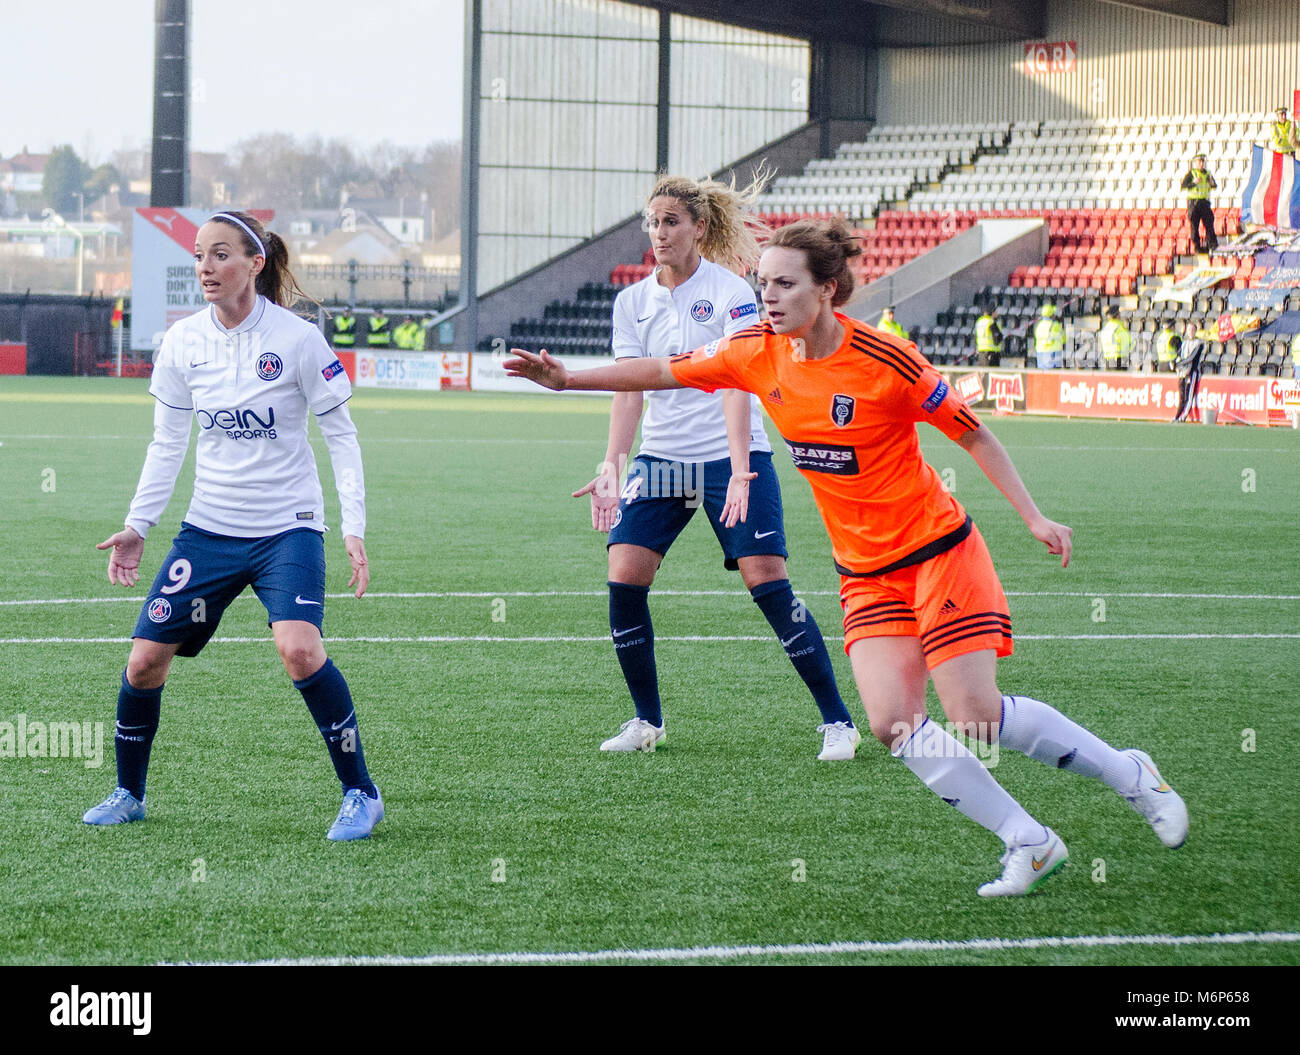 AIRDRIE, SCOTLAND - MARCH 22nd 2015: PSG's players, Kosovare Asllani and Kheira Hamraoui waiting for the ball - Stock Image